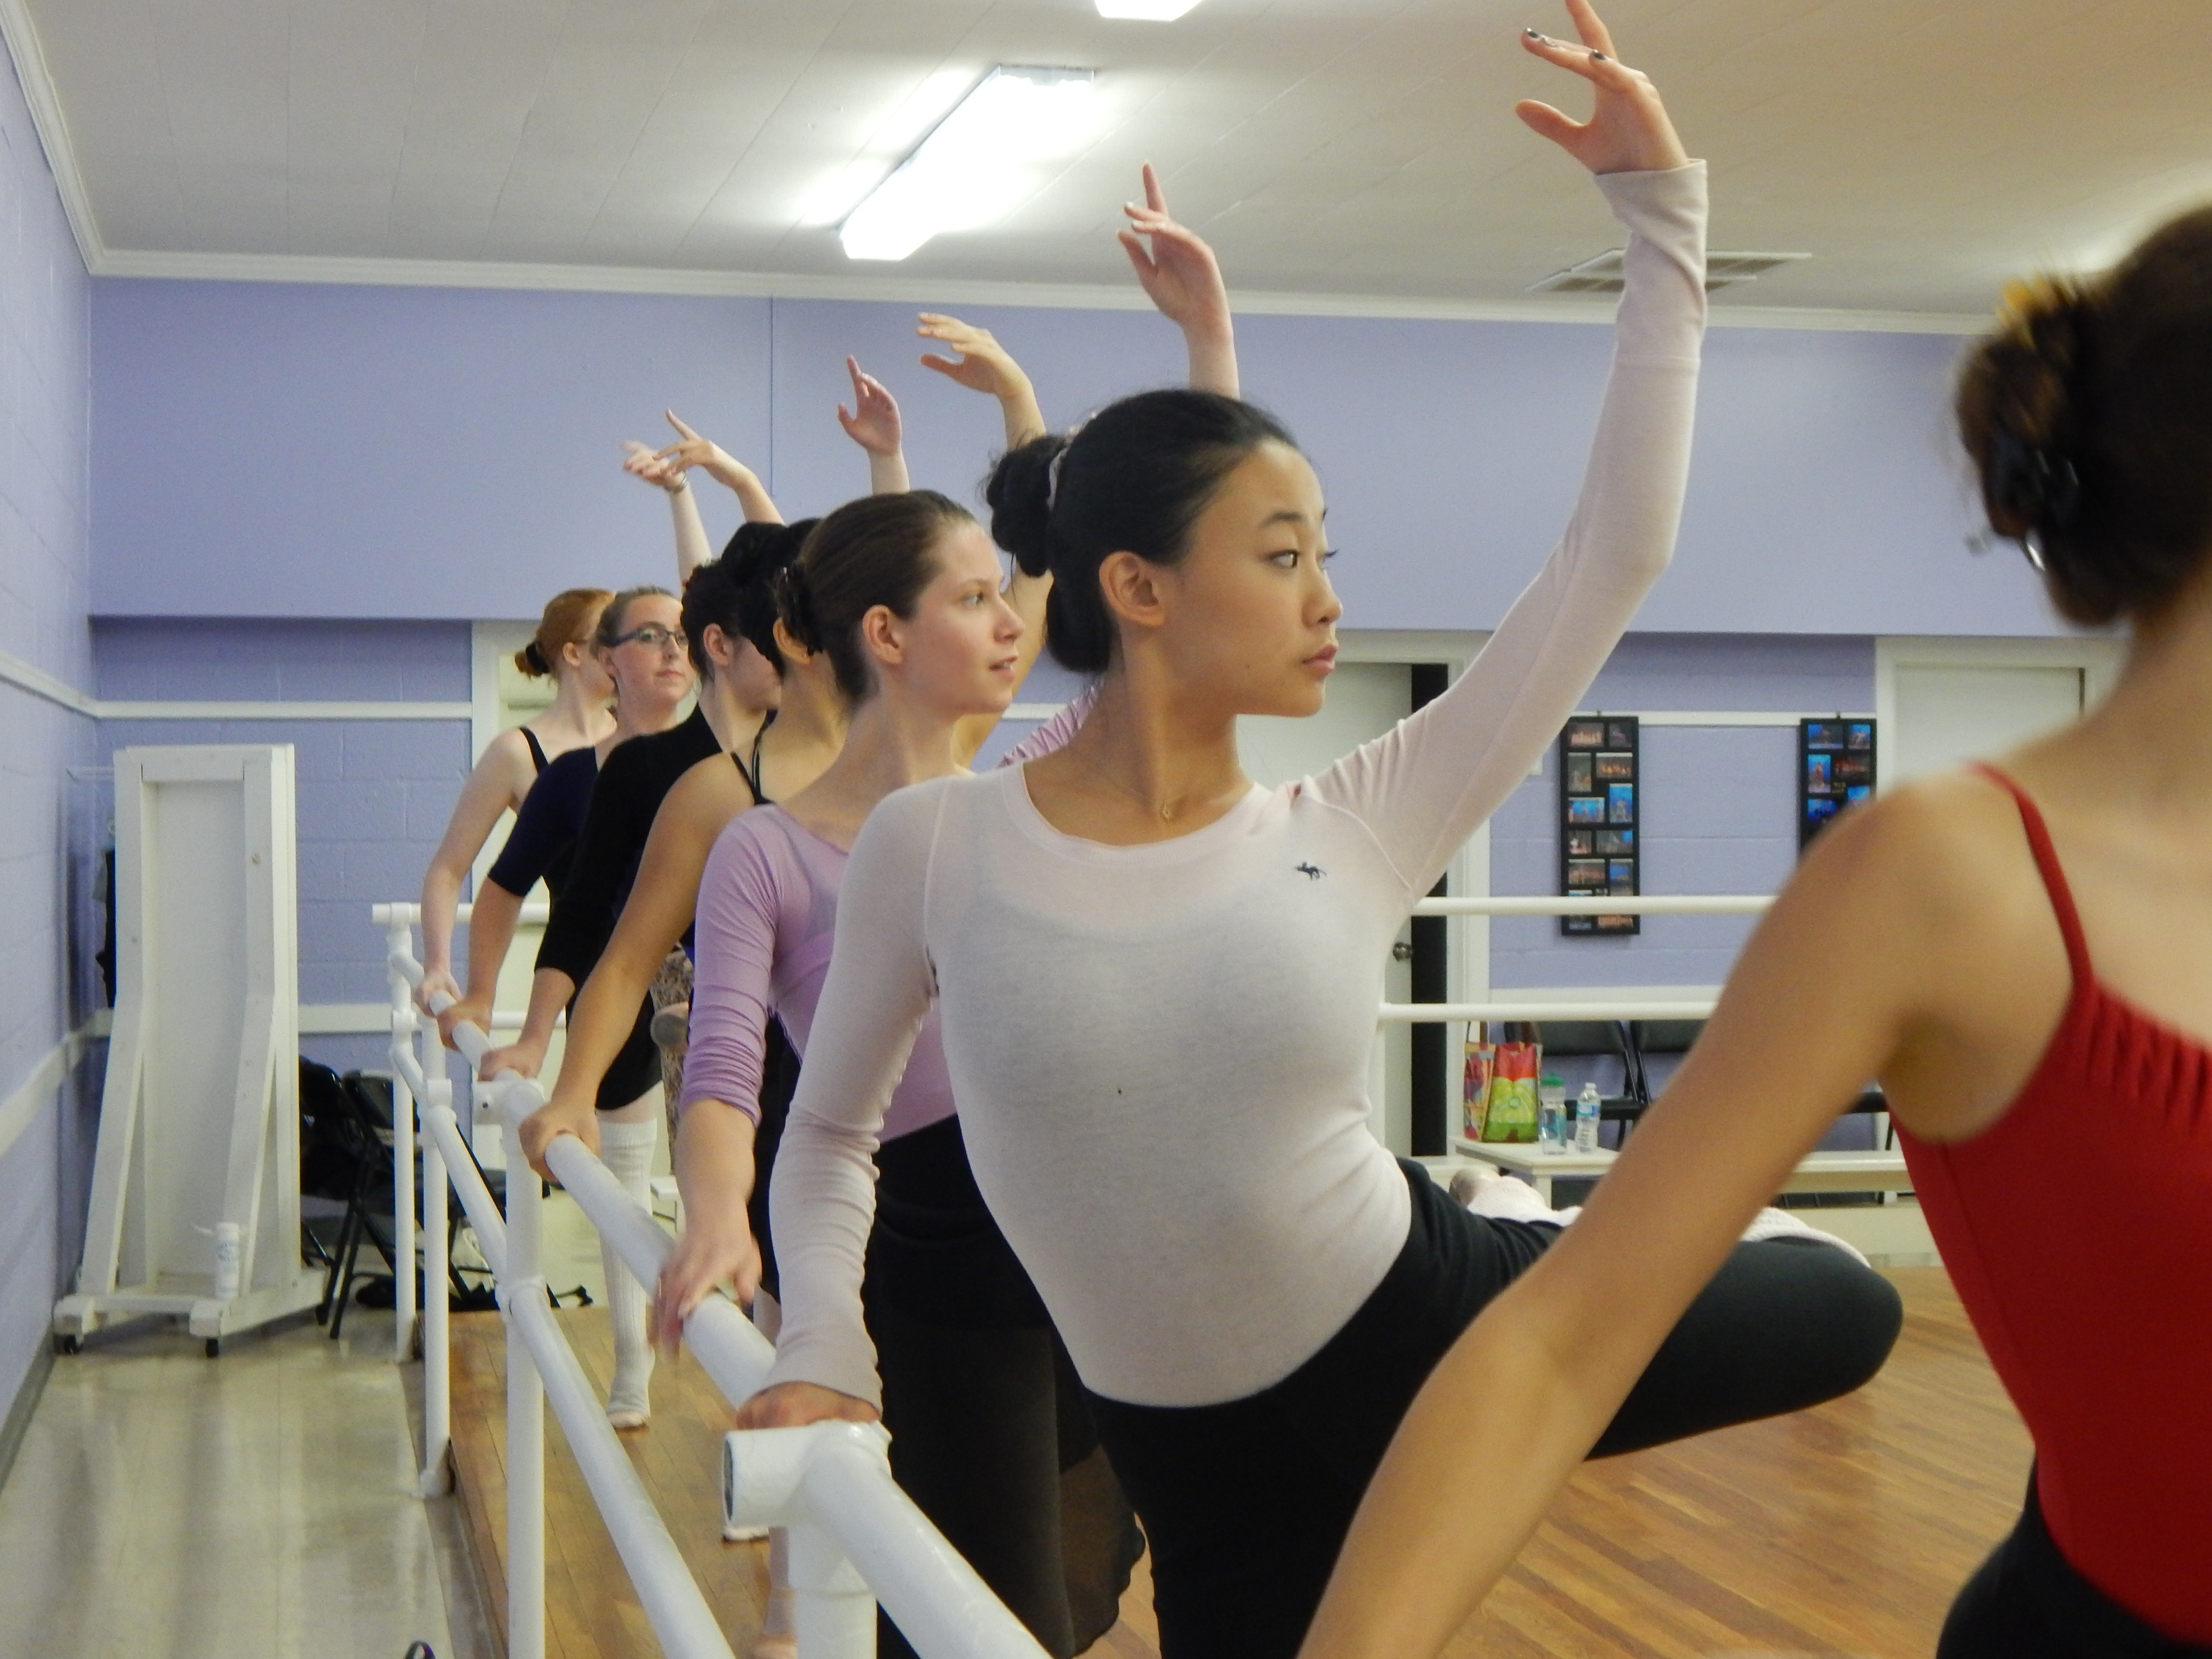 Row of ballet dancers posing on a barre